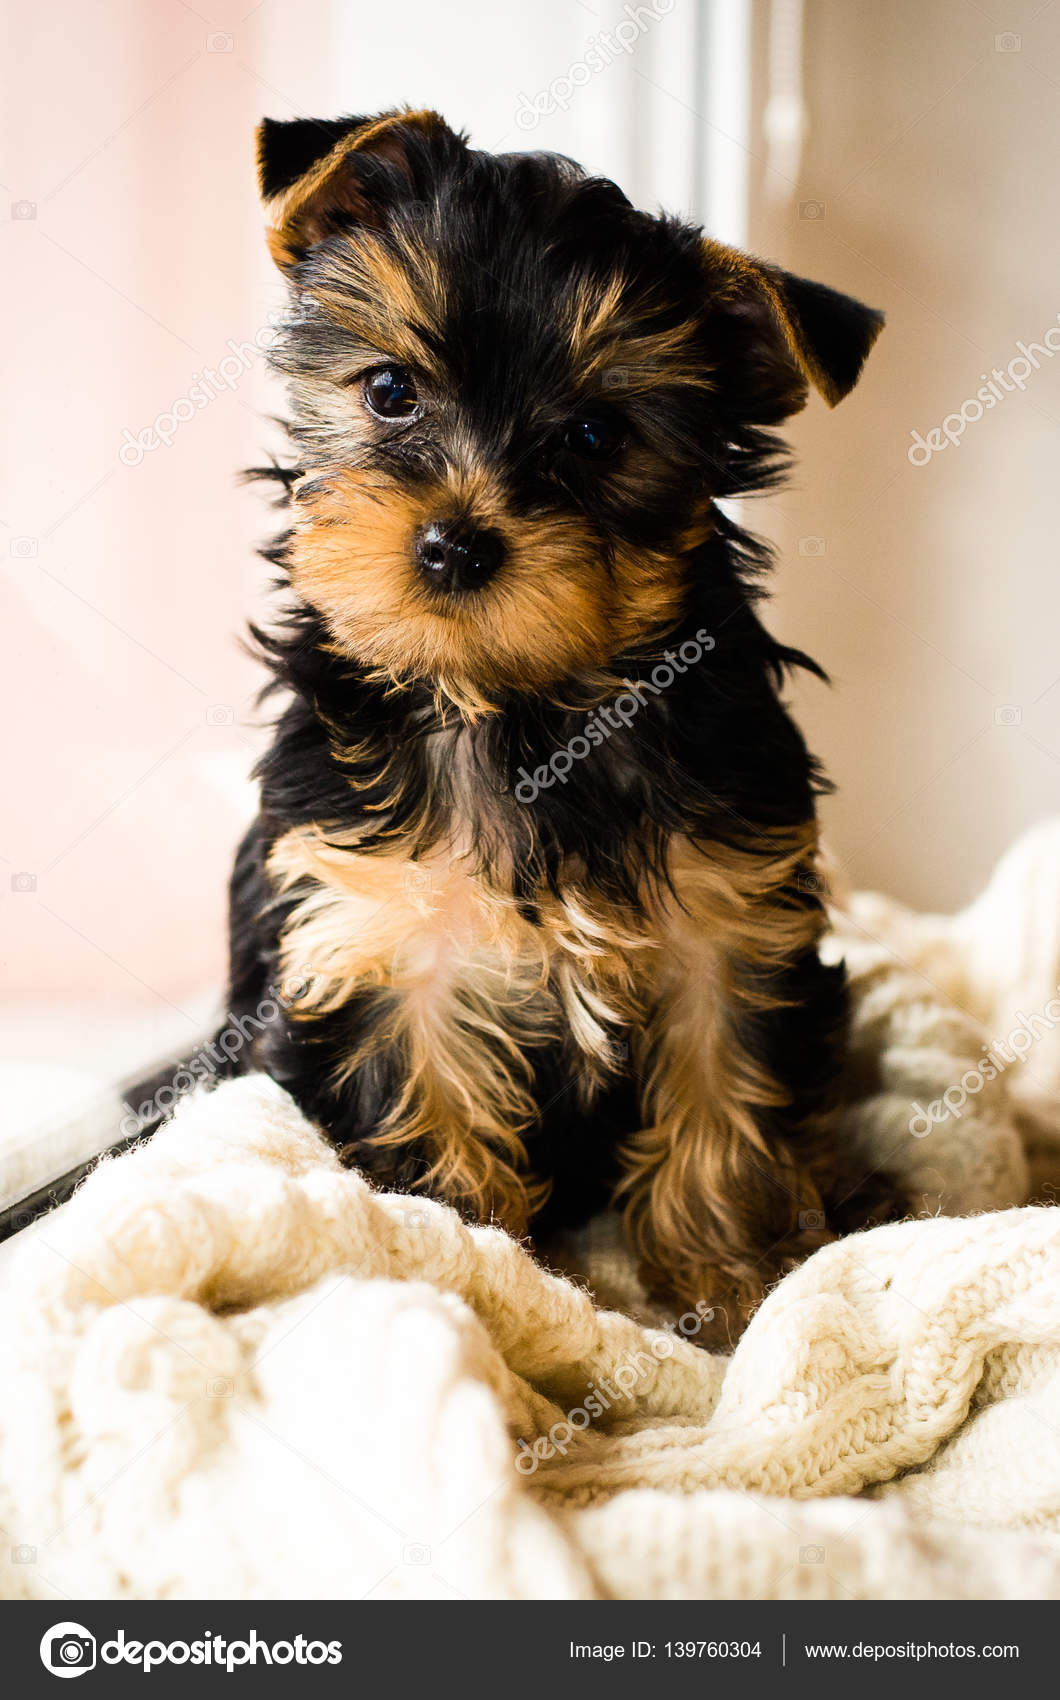 Yorkshire Terrier Puppy Sitting 3 Months Old On White Knitted